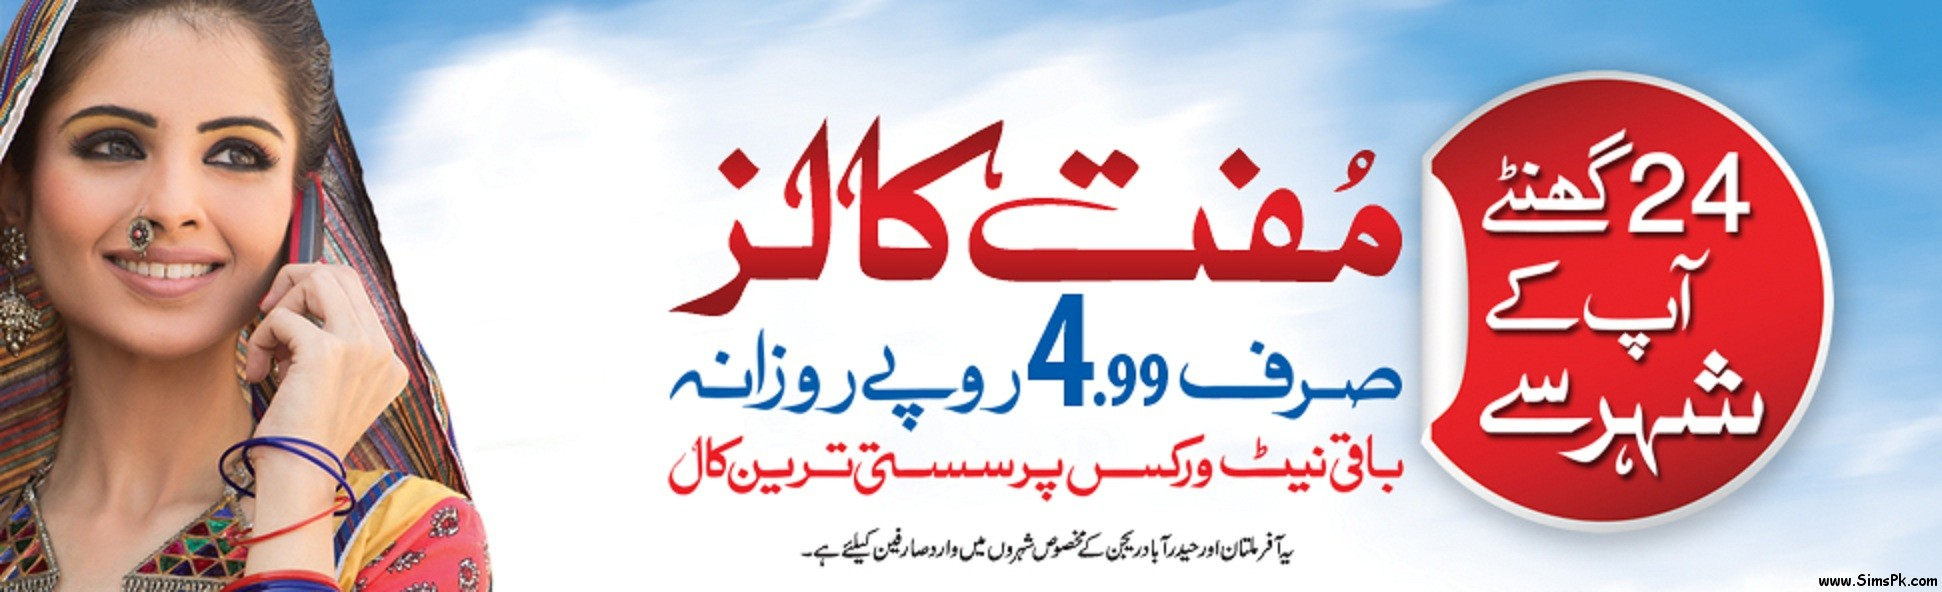 Warid Apna Sheher Offer